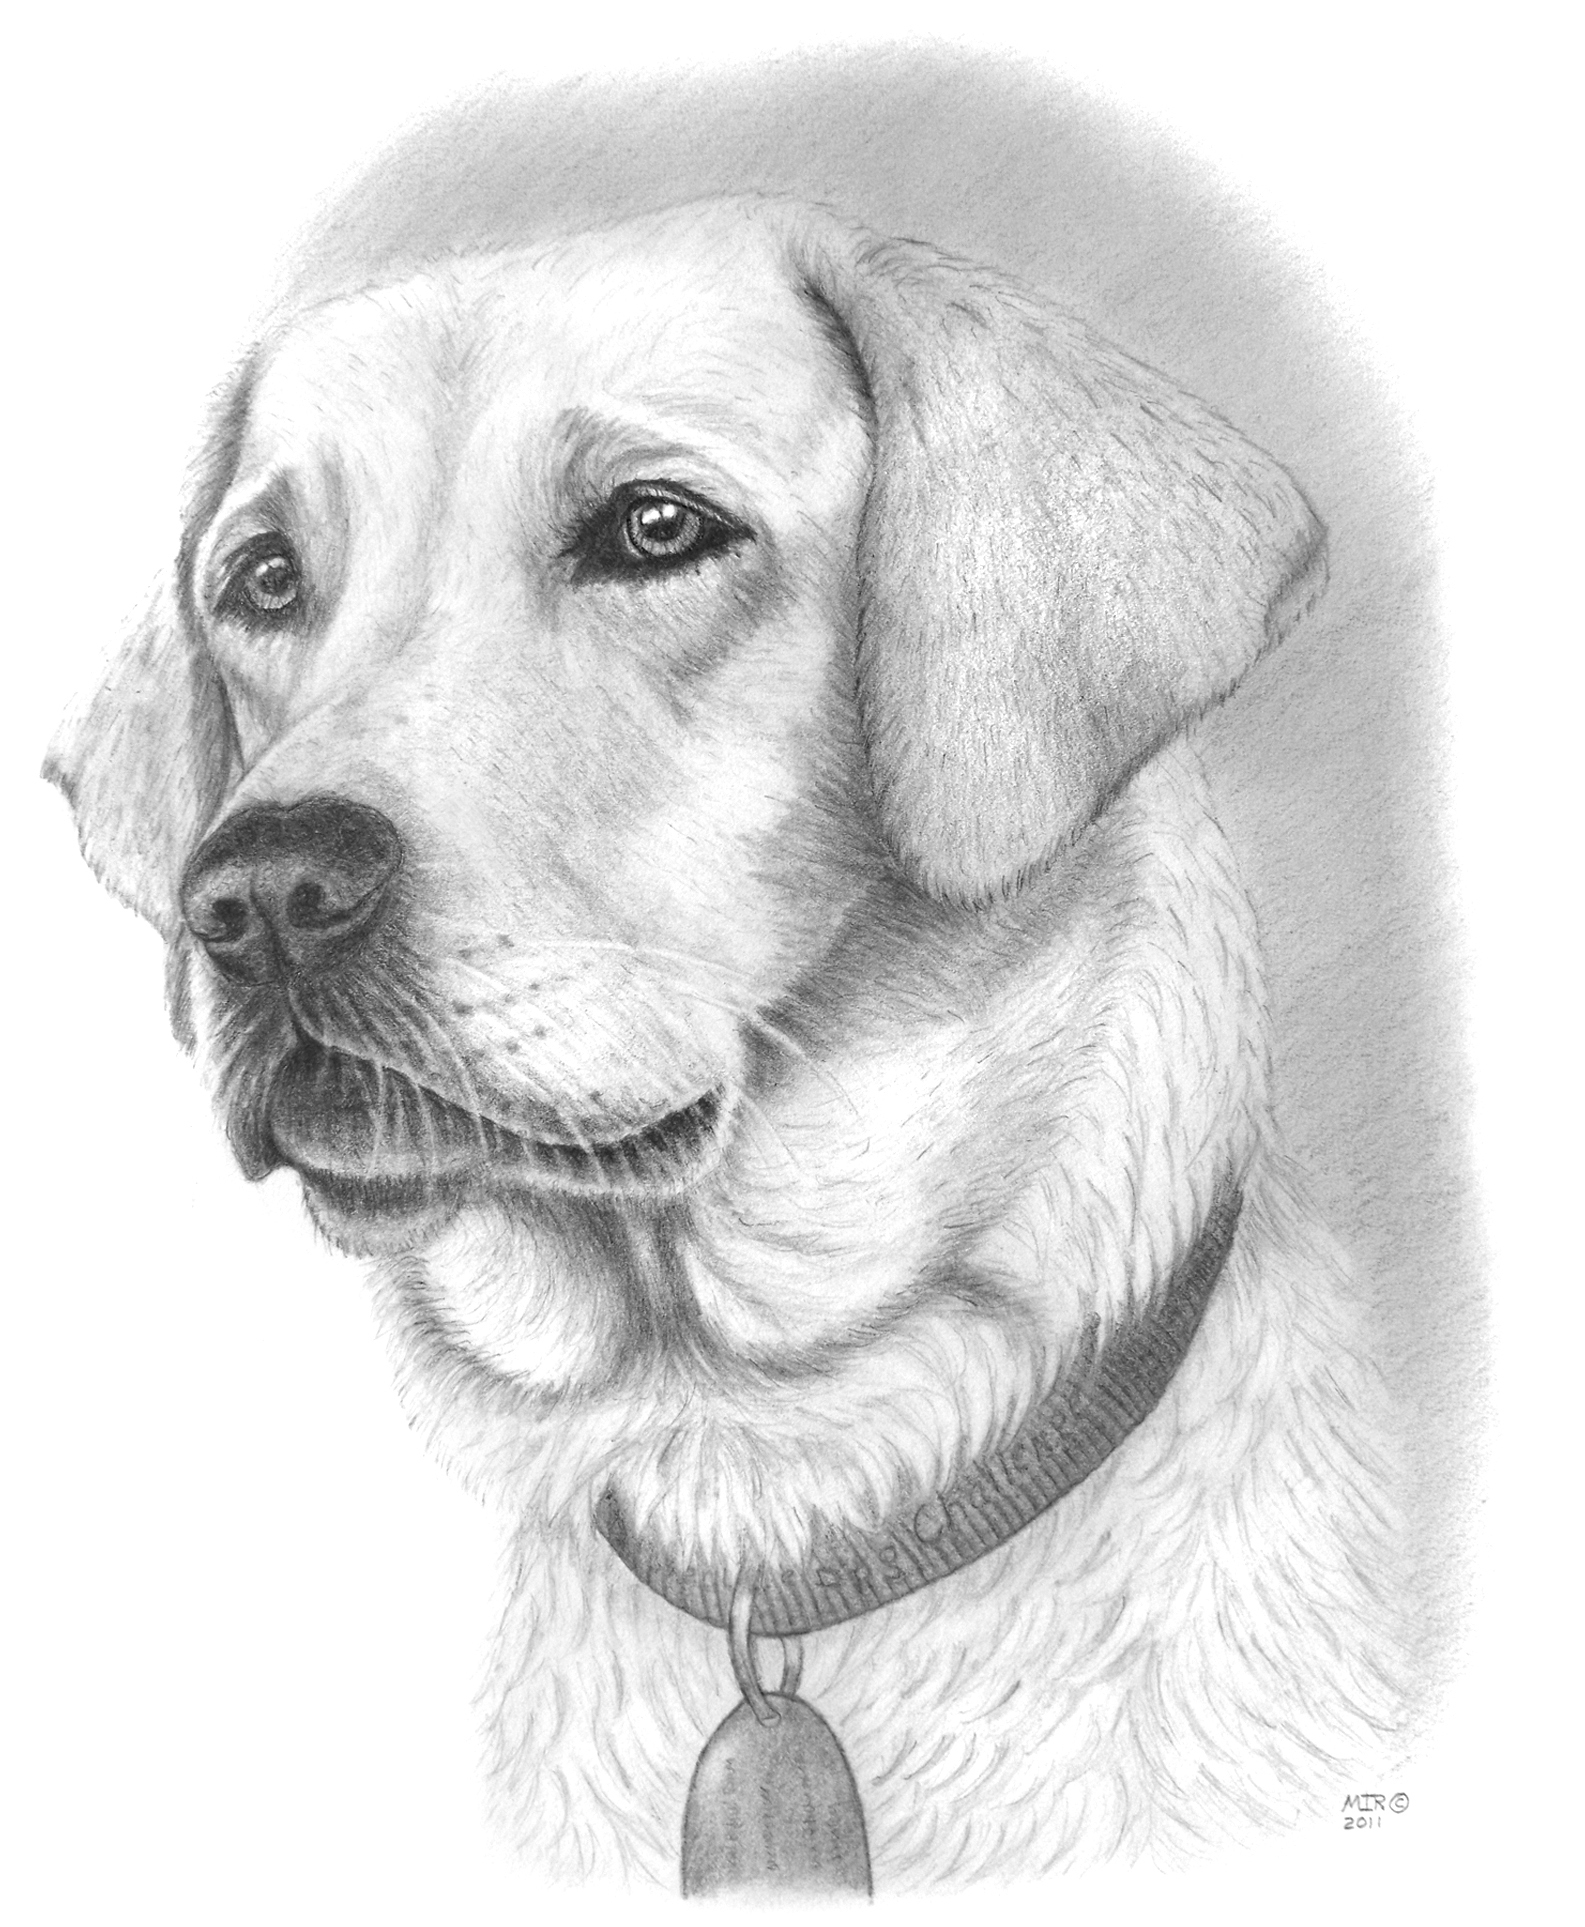 Dog Drawings In Pencil Images & Pictures - Becuo